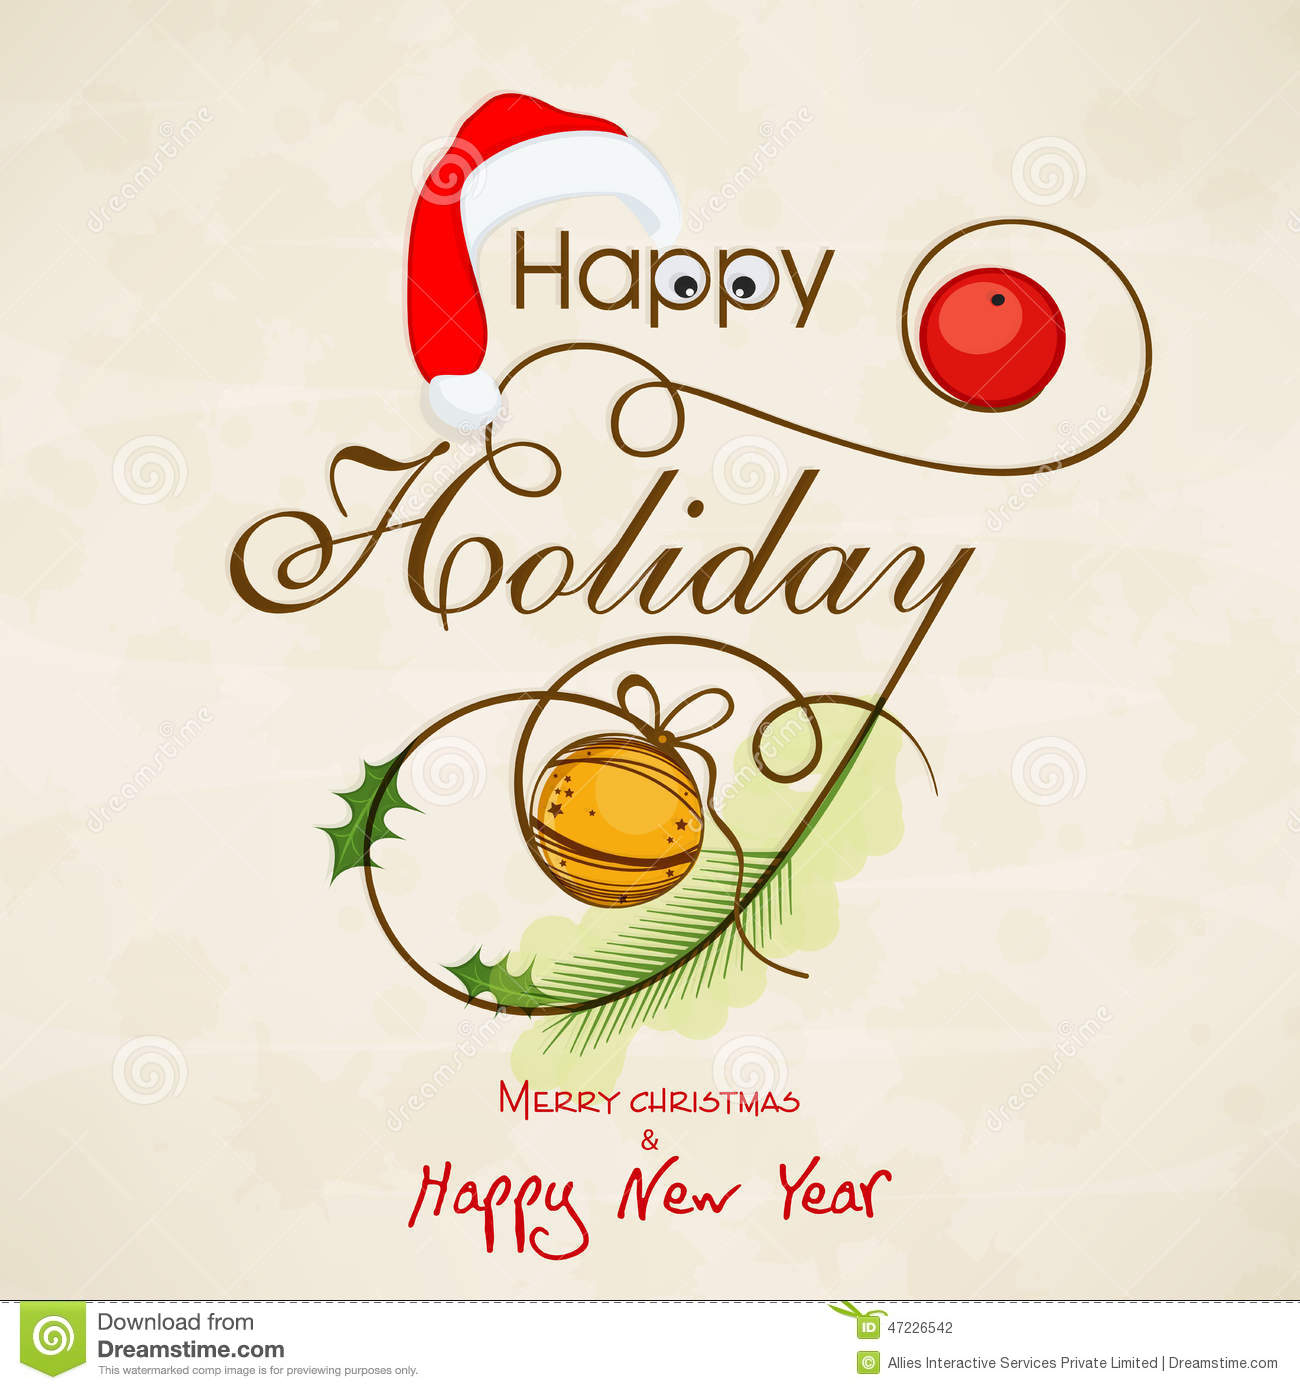 Celebrations Of Happy Holiday, Merry Christmas And New Year. Stock ...